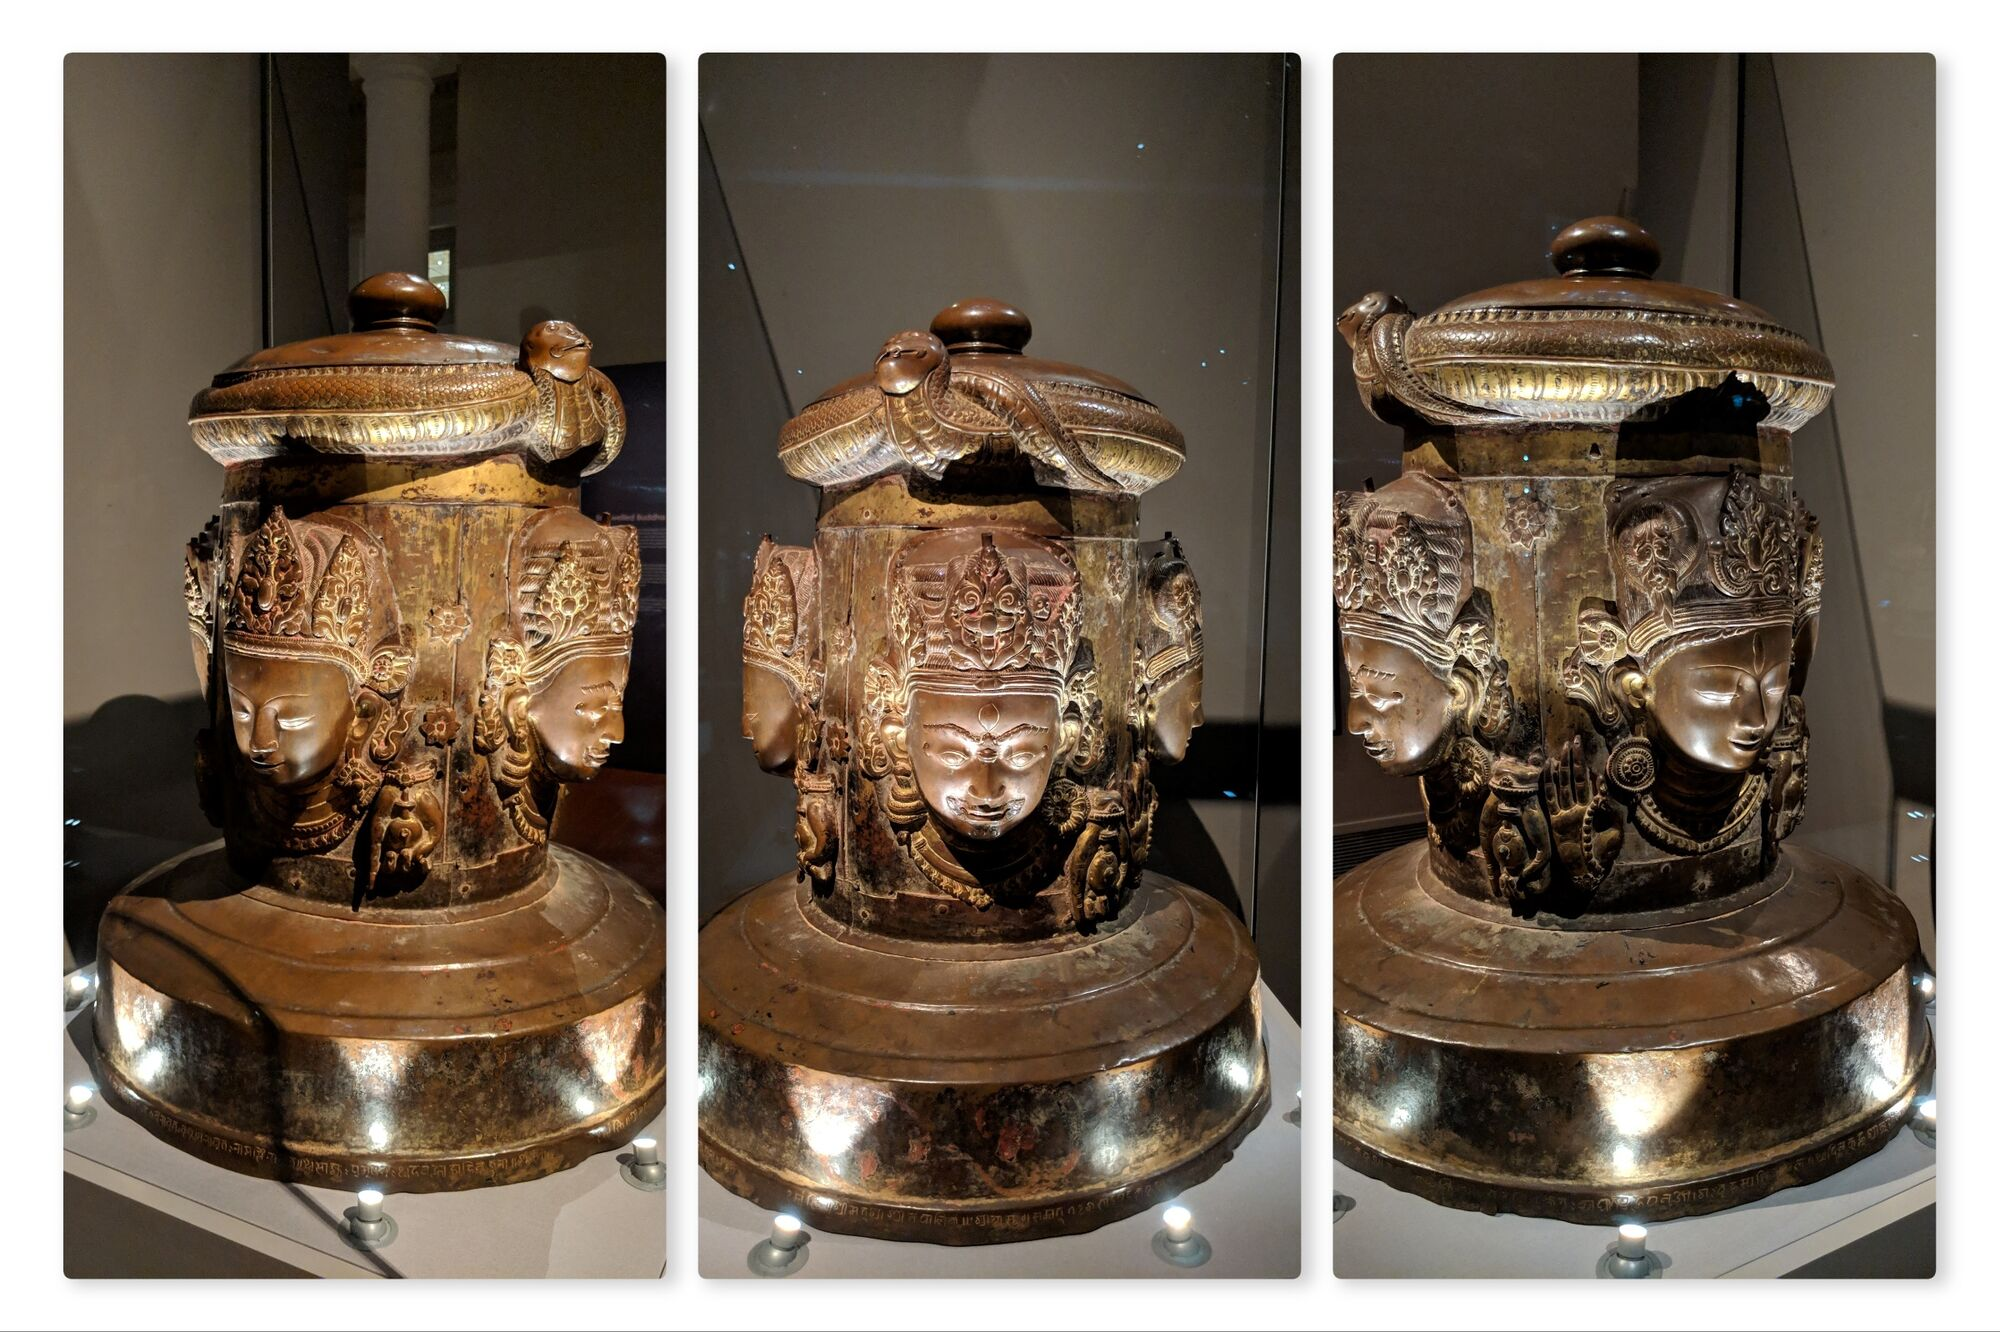 The cover of a linga, Nepal, dated 1636, Copper with gilding. The four heads emerging from the four directions each show a different aspect of Shiva.